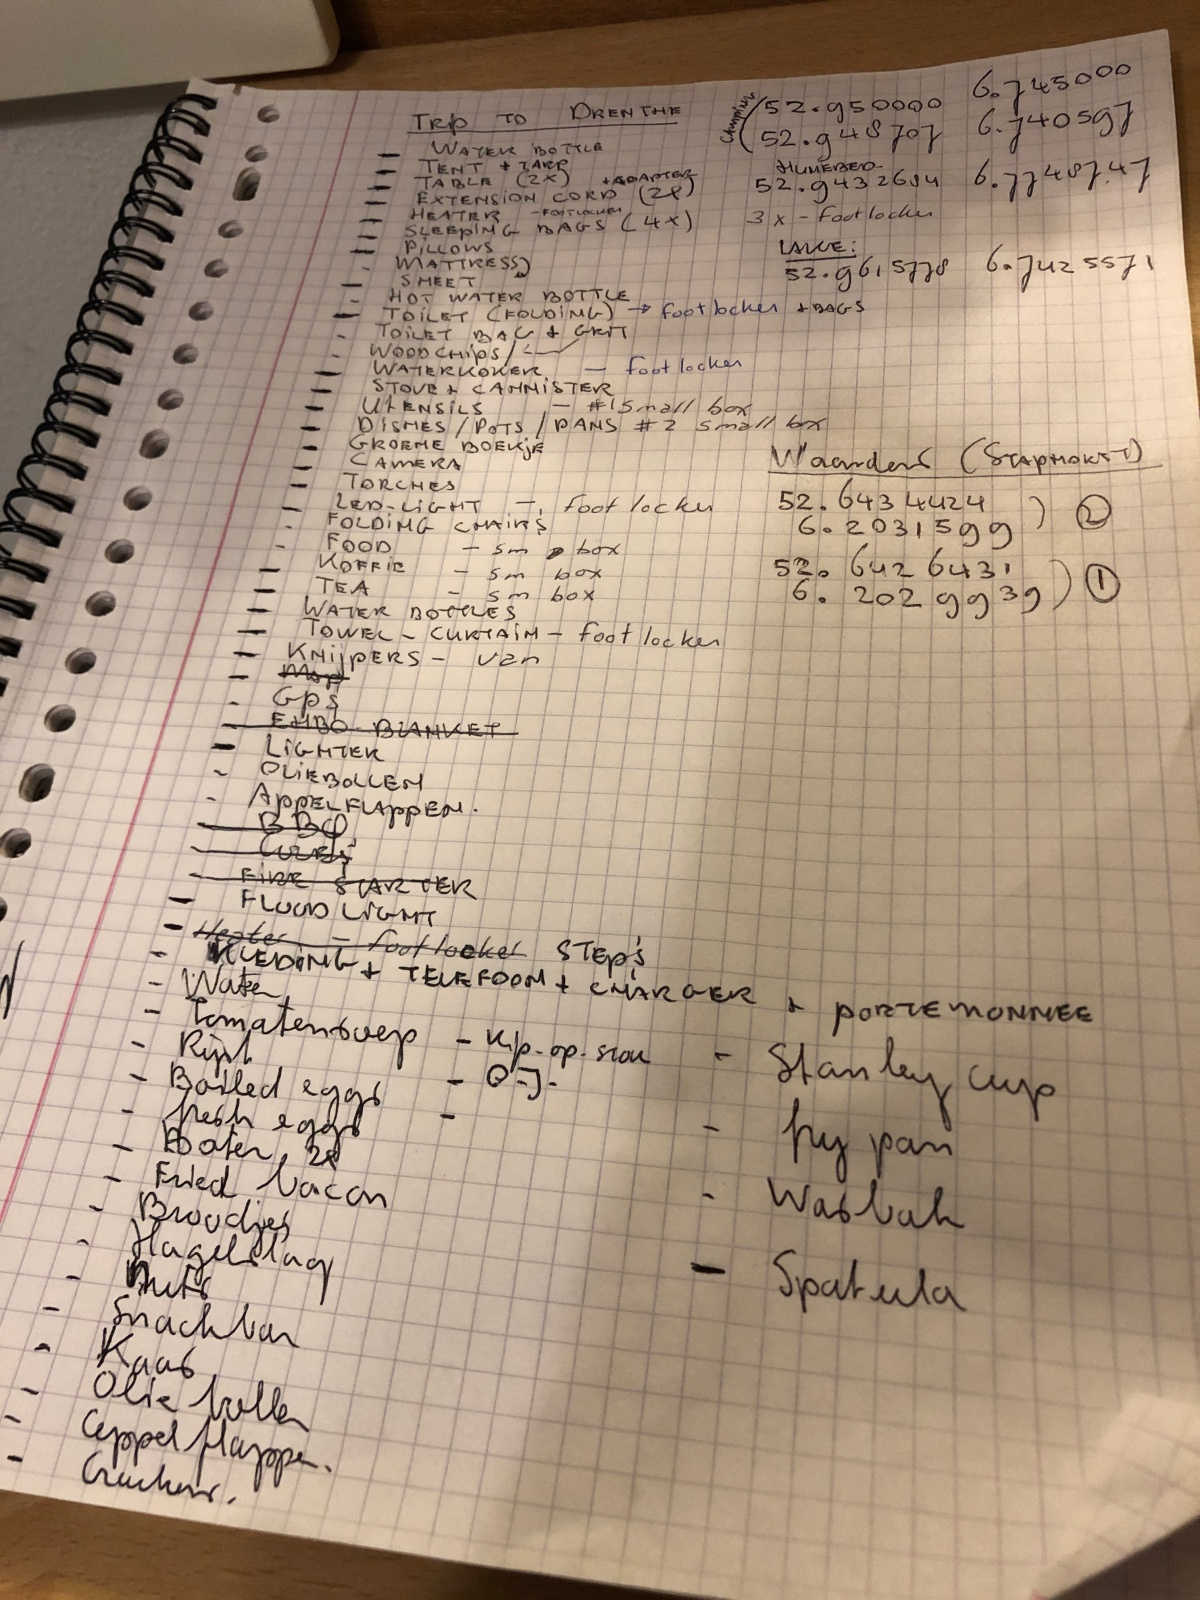 Our final packing list